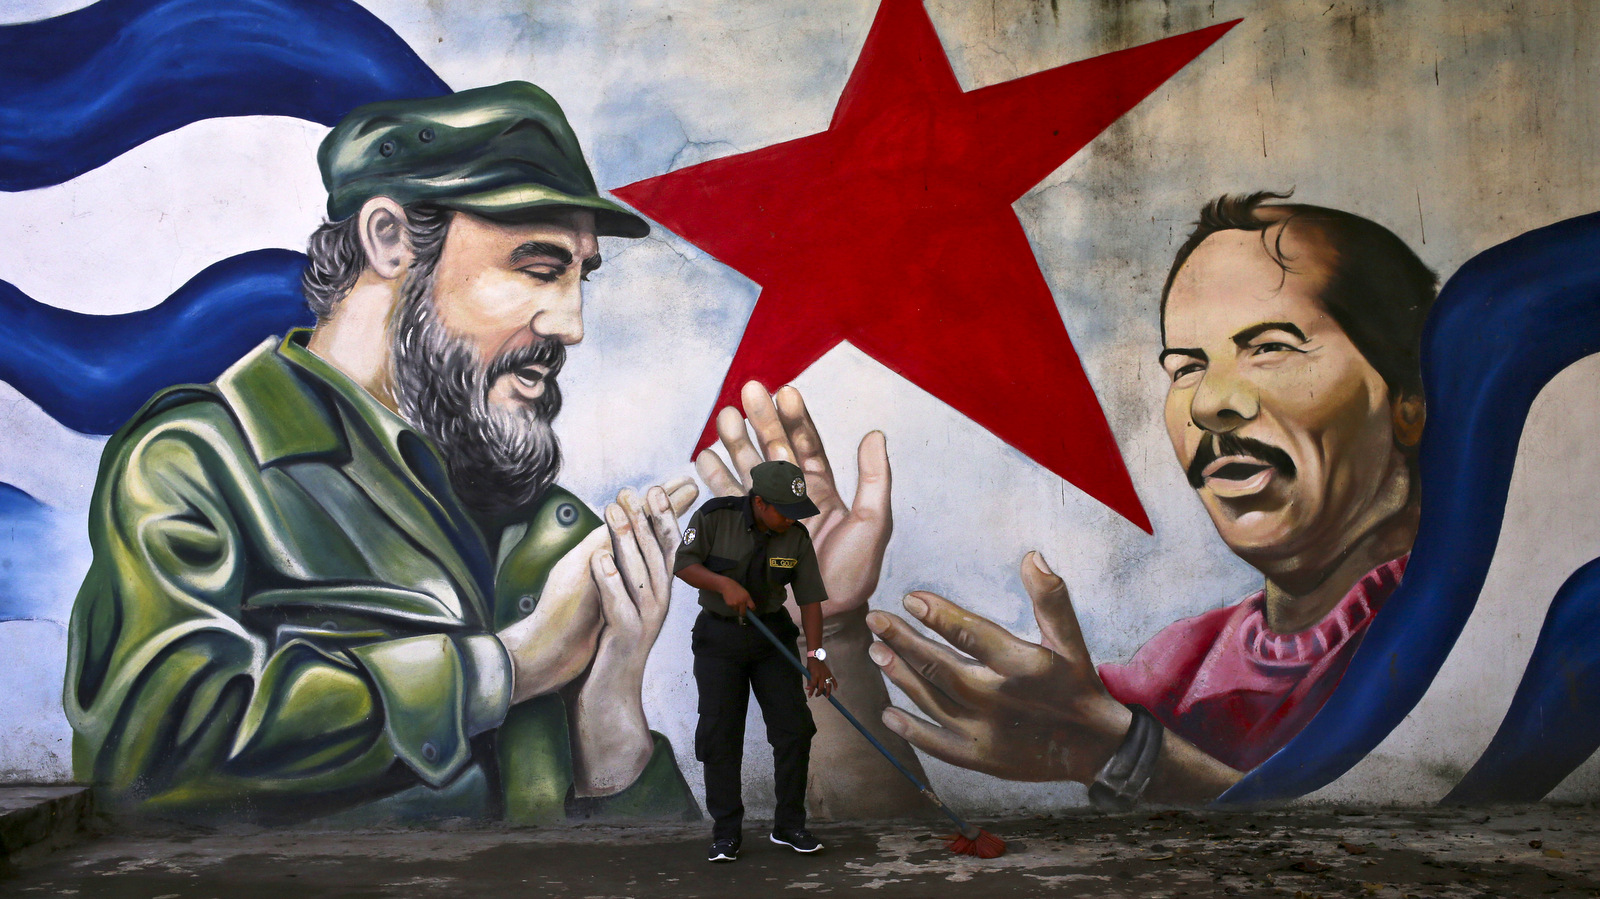 A woman sweeps the Cuba Plaza backdropped by a mural depicting Cuba's former President Fidel Castro and Nicaragua's President Daniel Ortega, in Managua, Nicaragua, Friday, Nov. 4, 2016. (AP Photo/Esteban Felix)